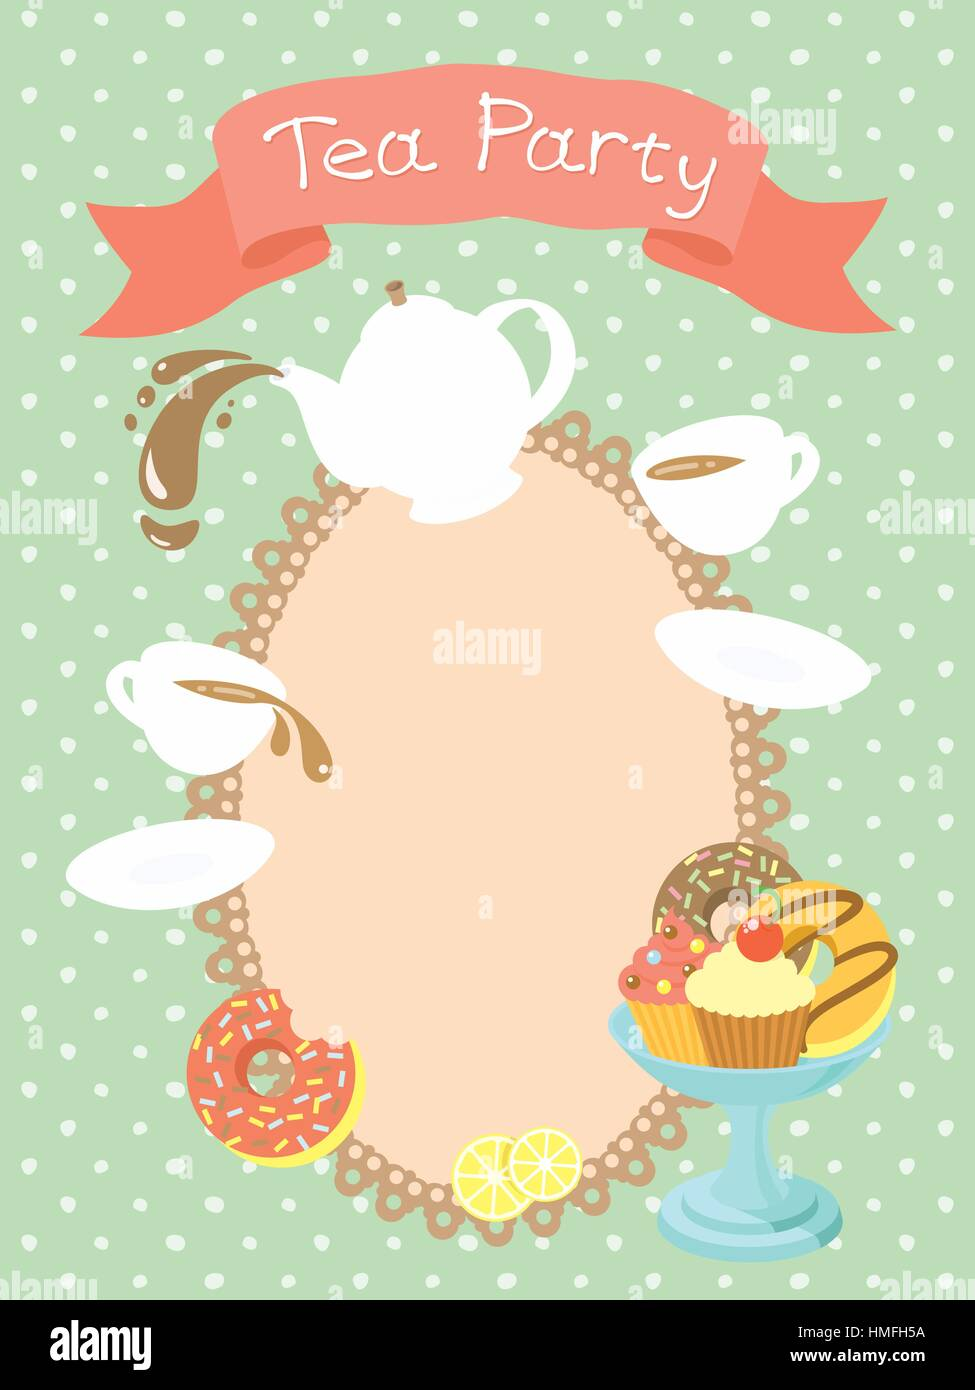 Colorful Flat Illustration Of A Tea Party Invitation Card With A